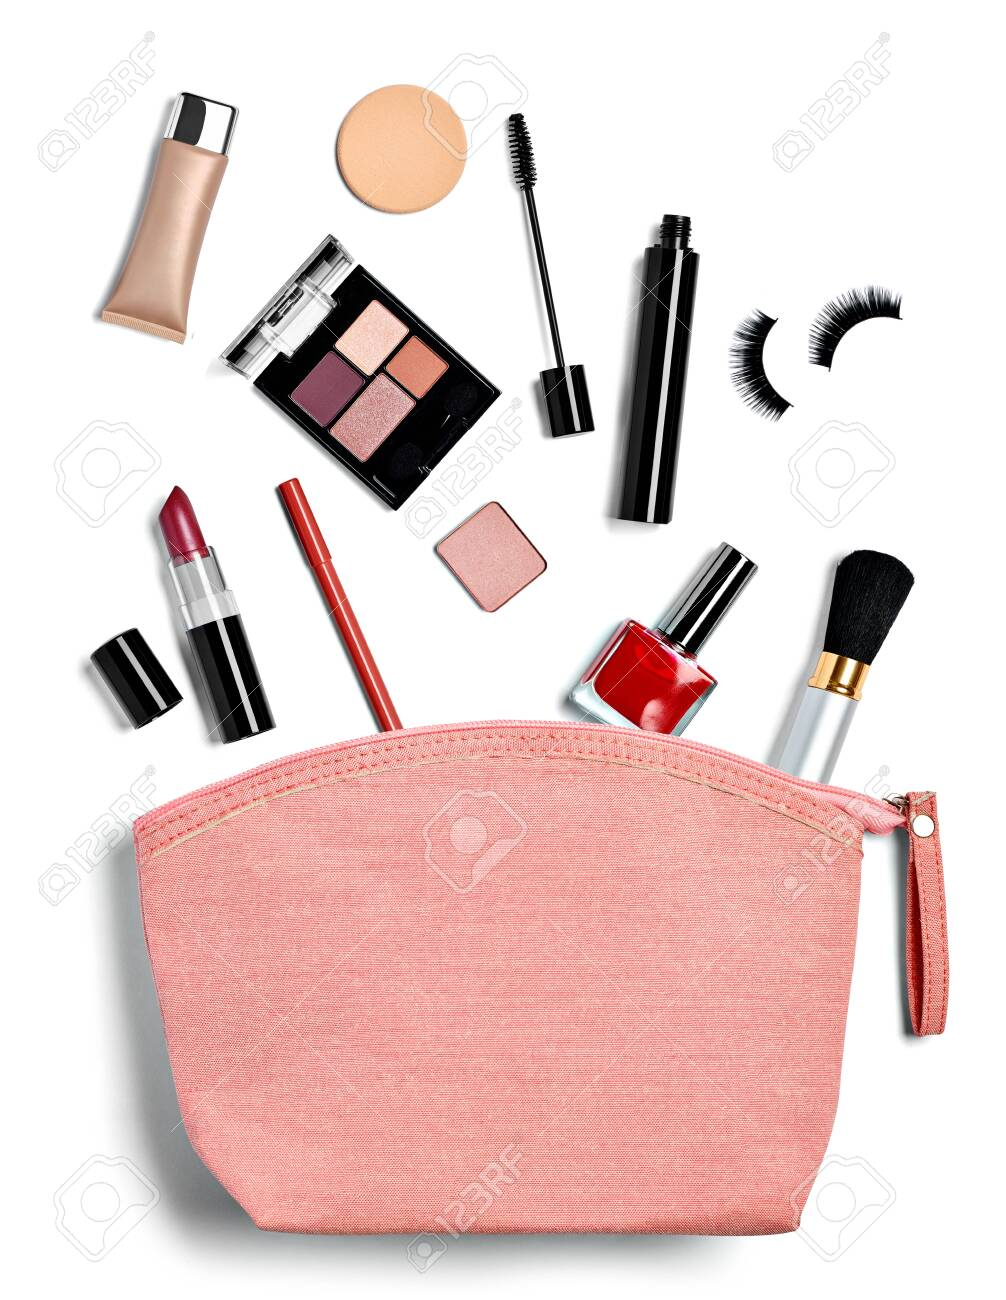 close up of a vanity case full of make up on white background - 138390900